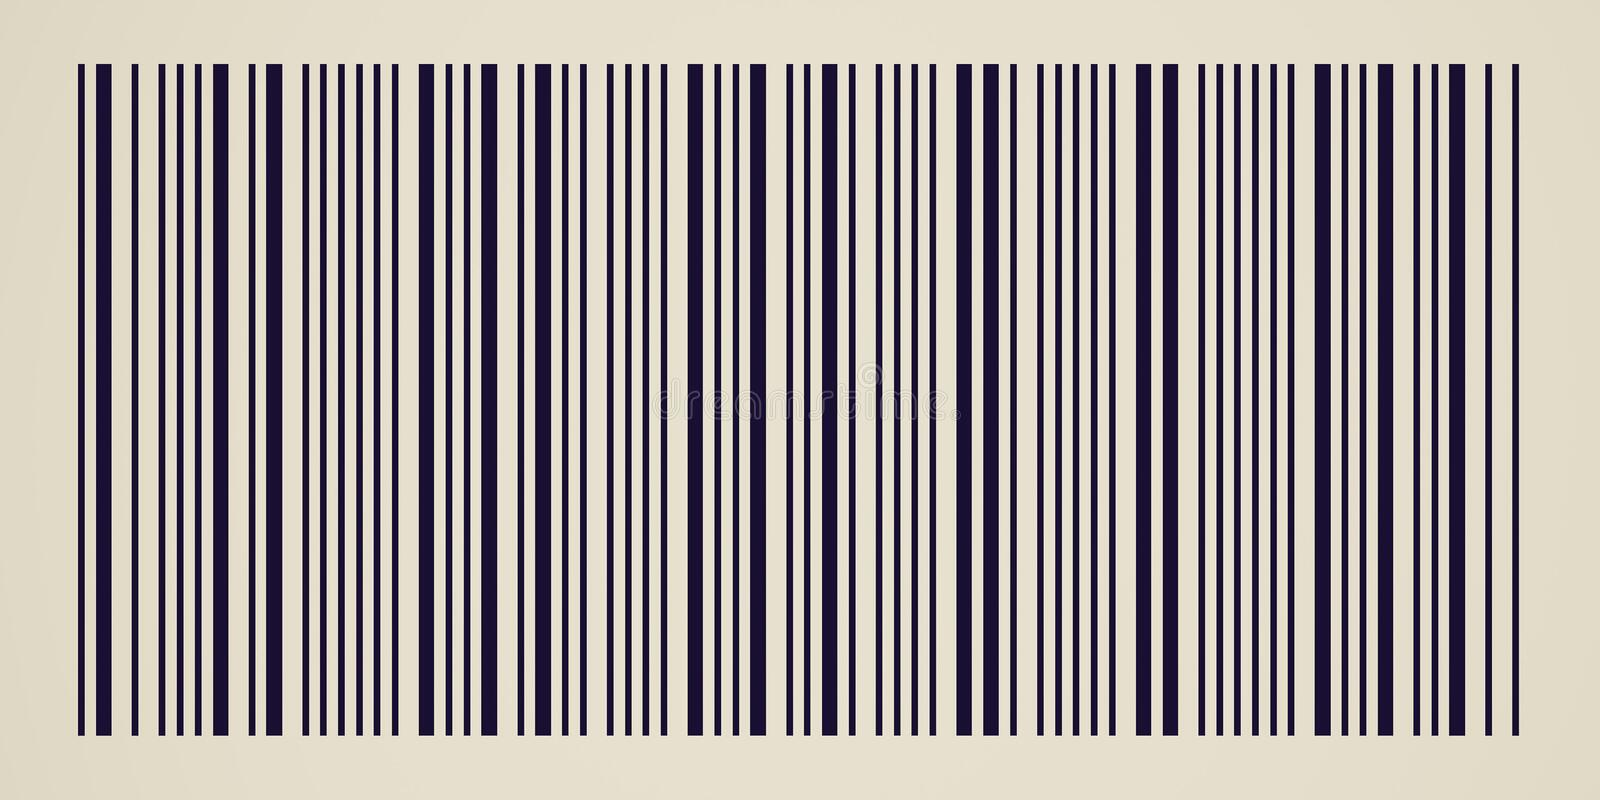 Retro look Barcode stock illustration